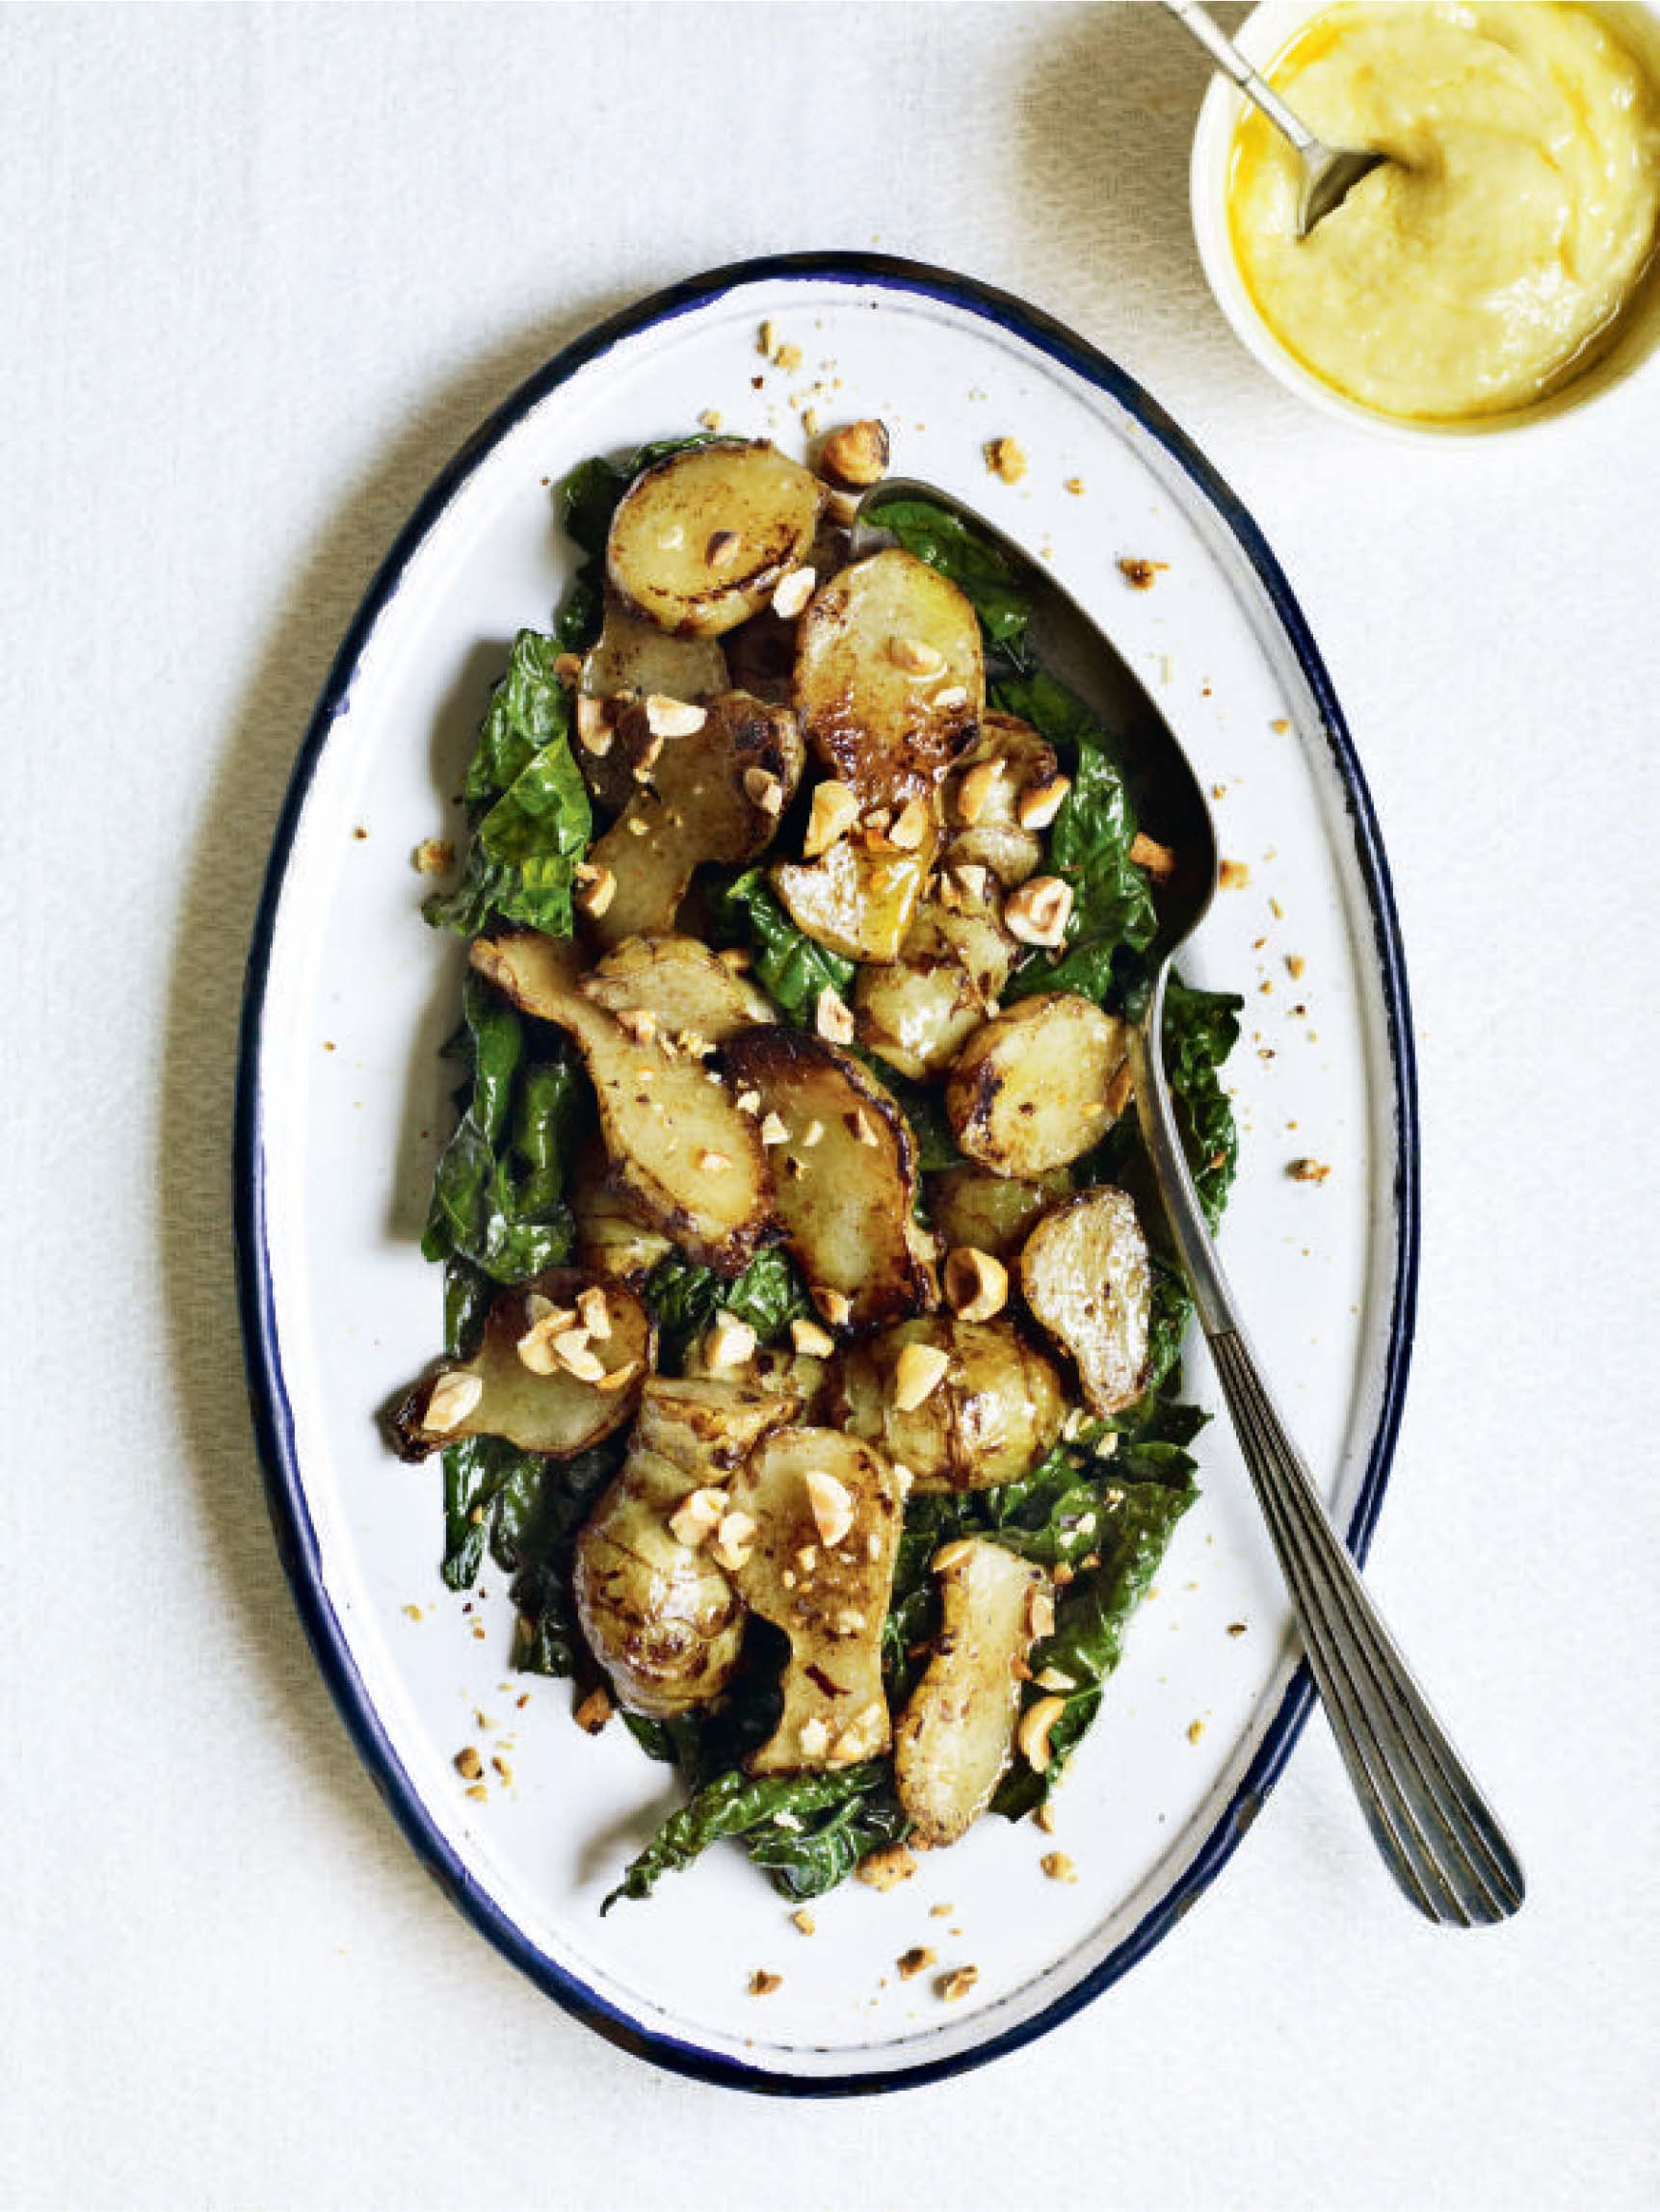 Jerusalem artichokes and cavolo nero with garlic